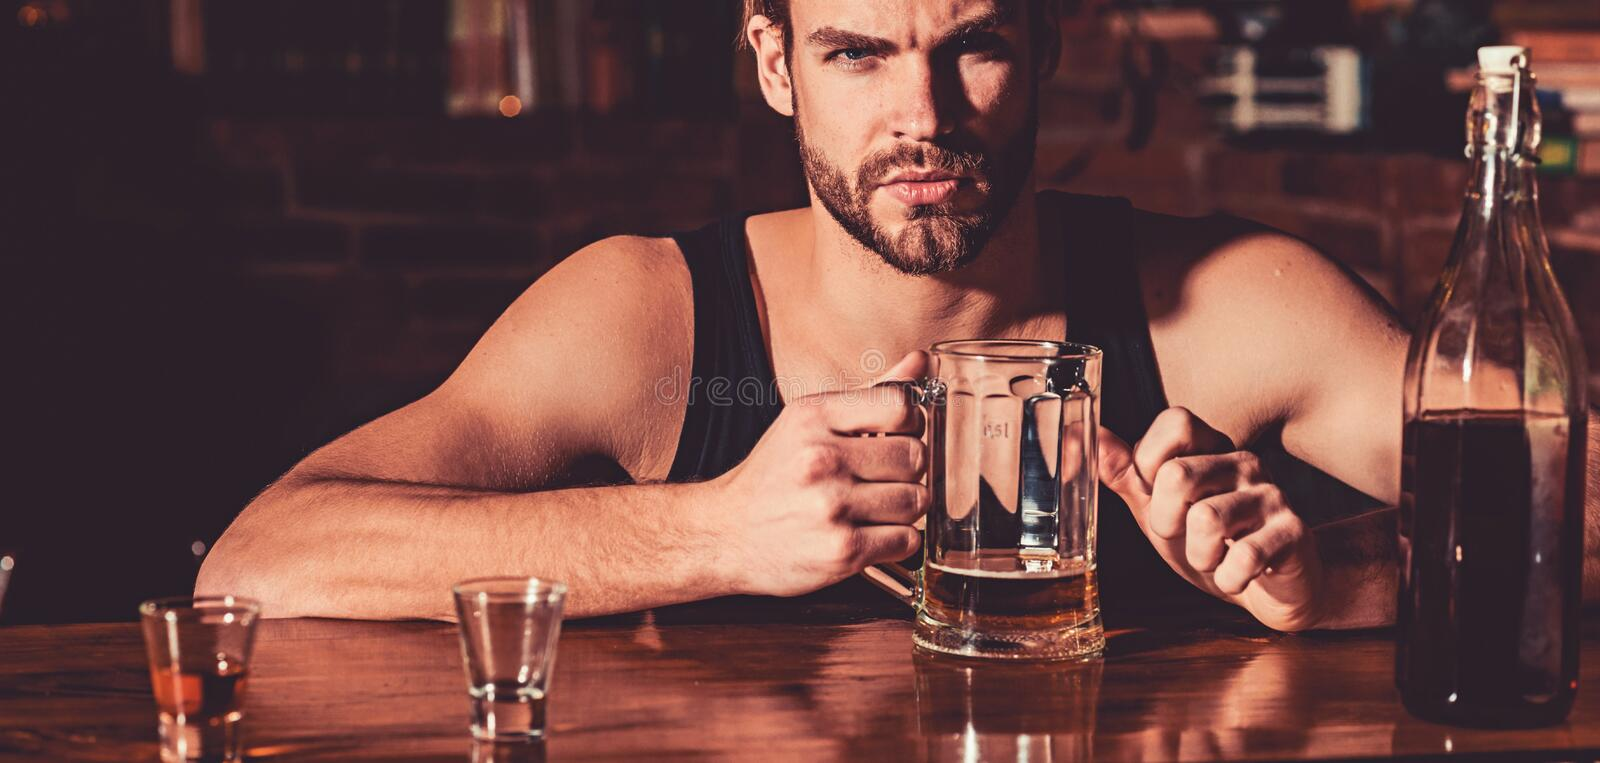 Having some beer. Alcohol addict with beer mug. Man drinker in pub. Handsome man drink beer at bar counter. Beer. Restaurant. Alcohol addiction and bad habit royalty free stock photography